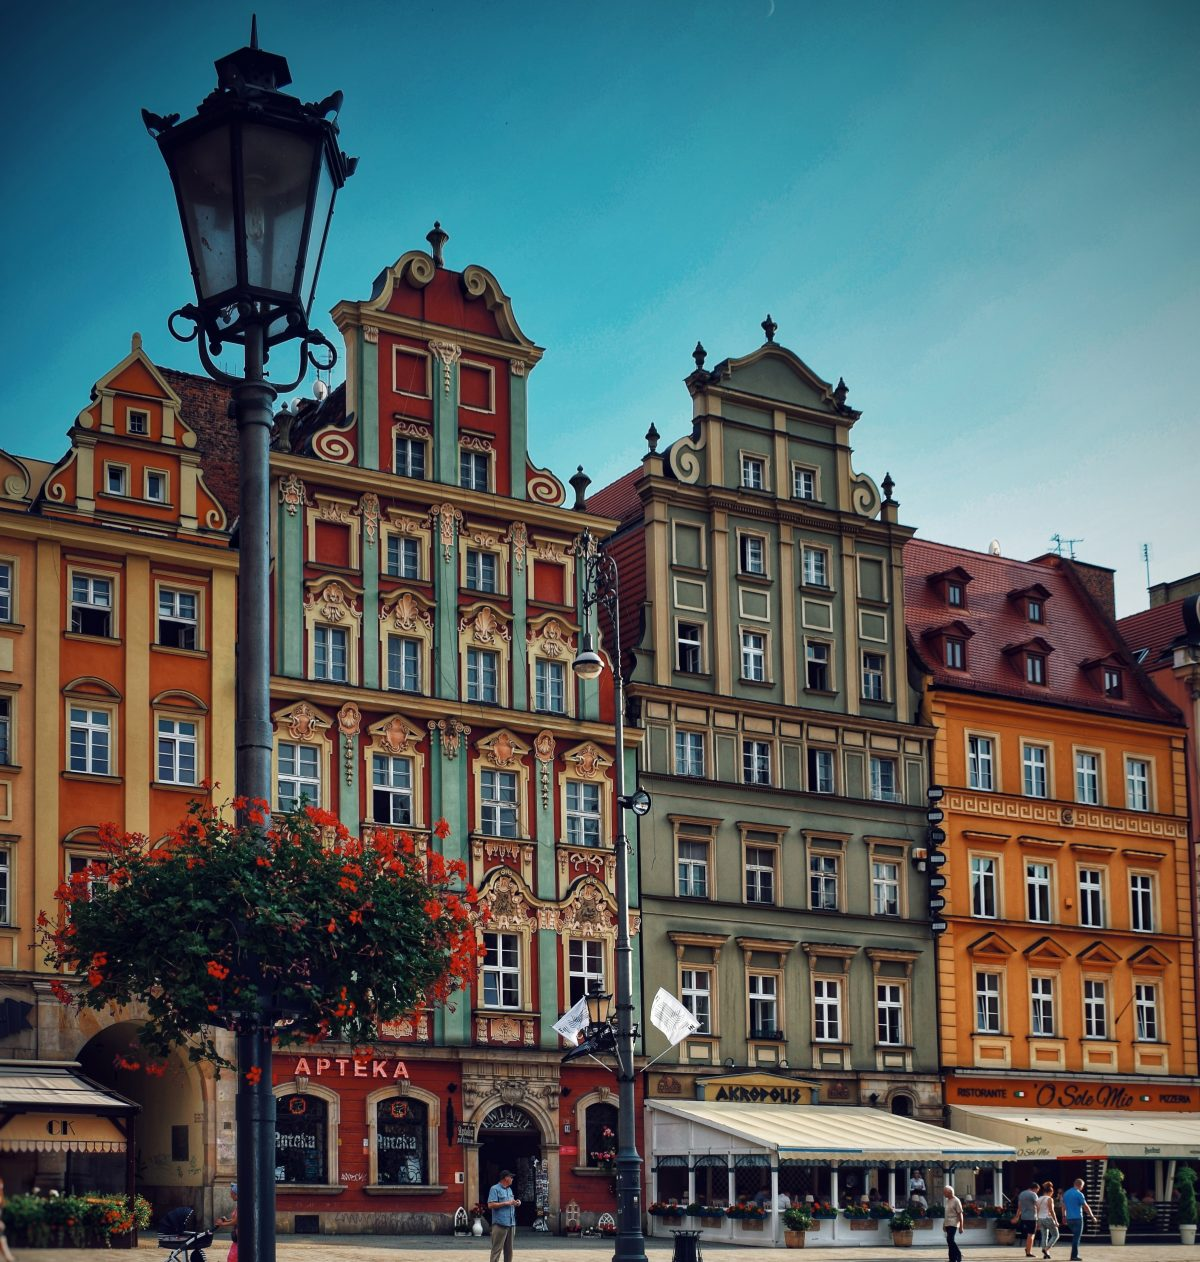 People walking in front of multicolored buildings in Wroclaw, Poland